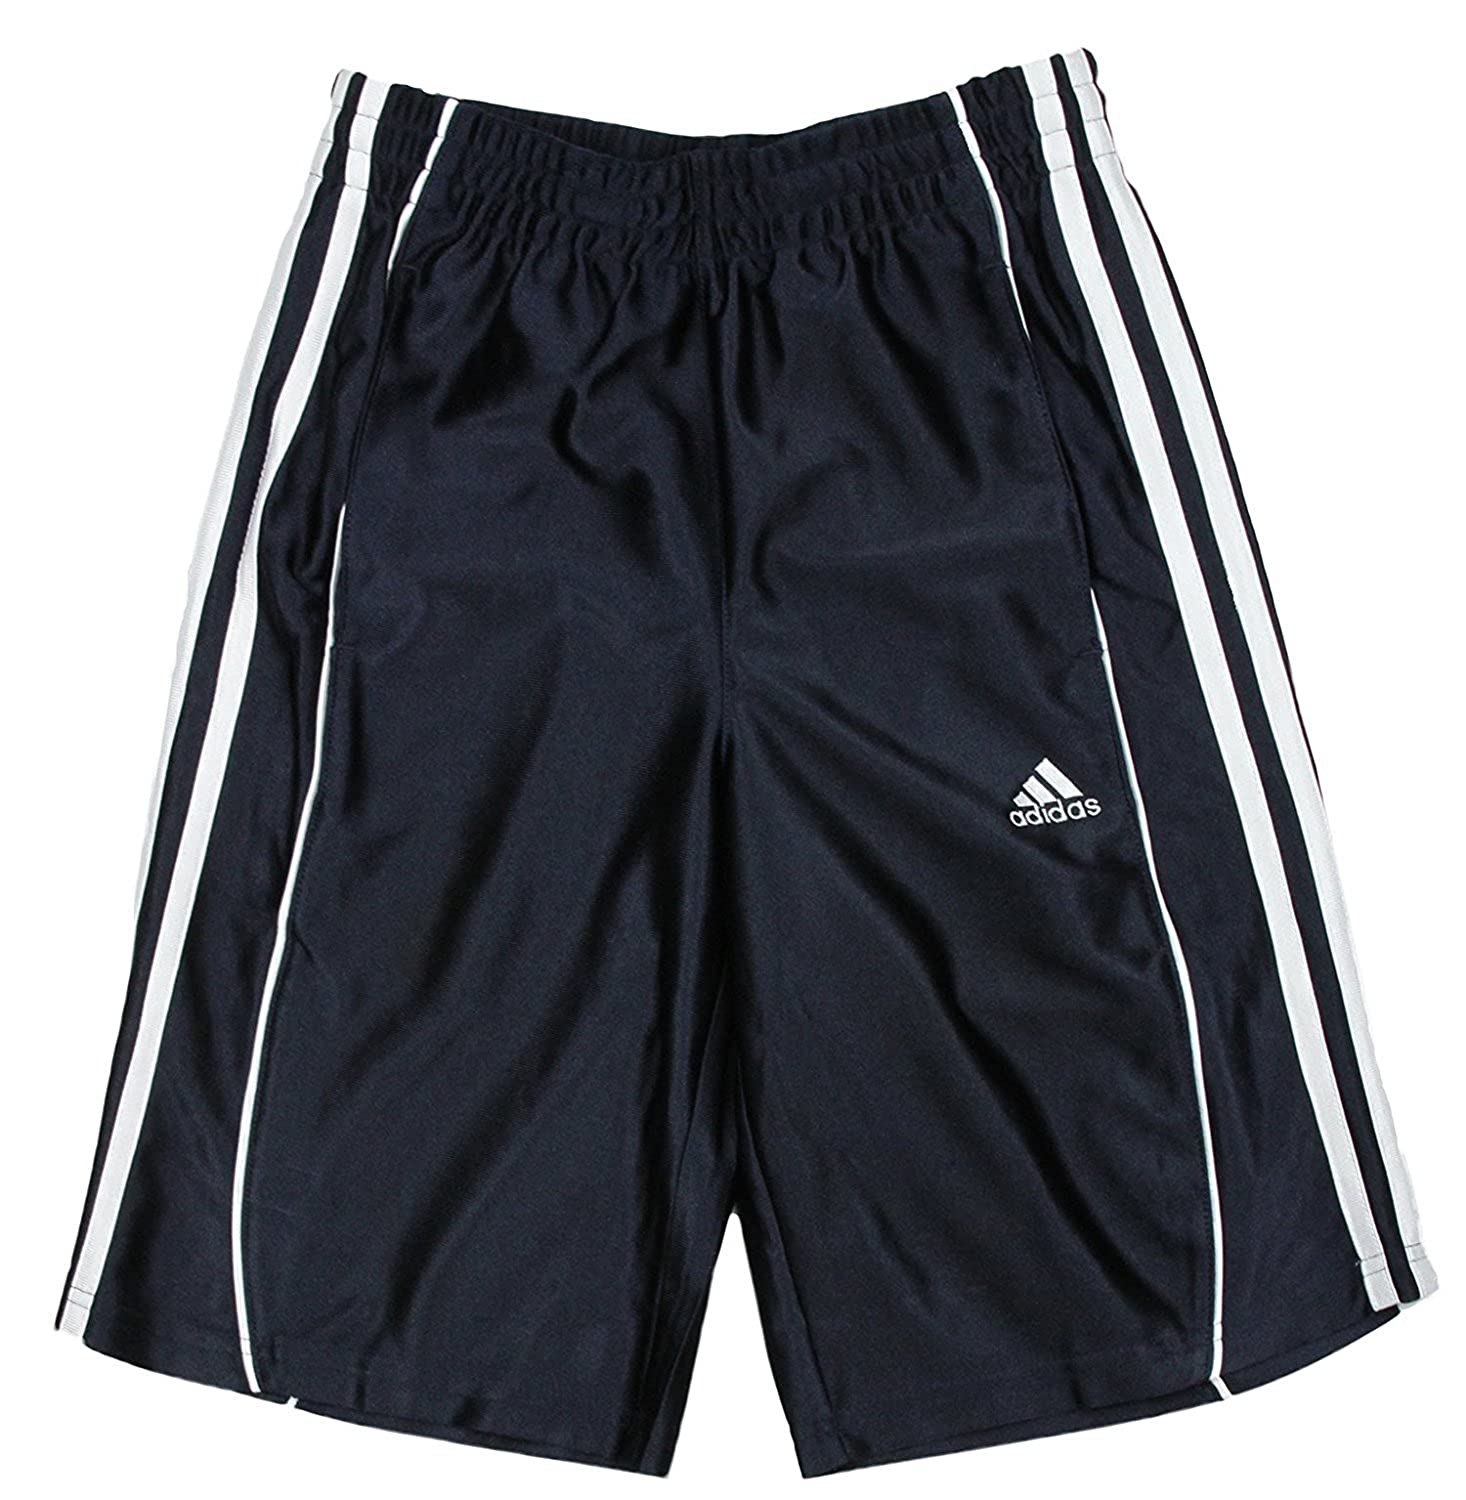 Adidas Big Boys Basic Athletic 3 Stripe Shorts - Navy Blue